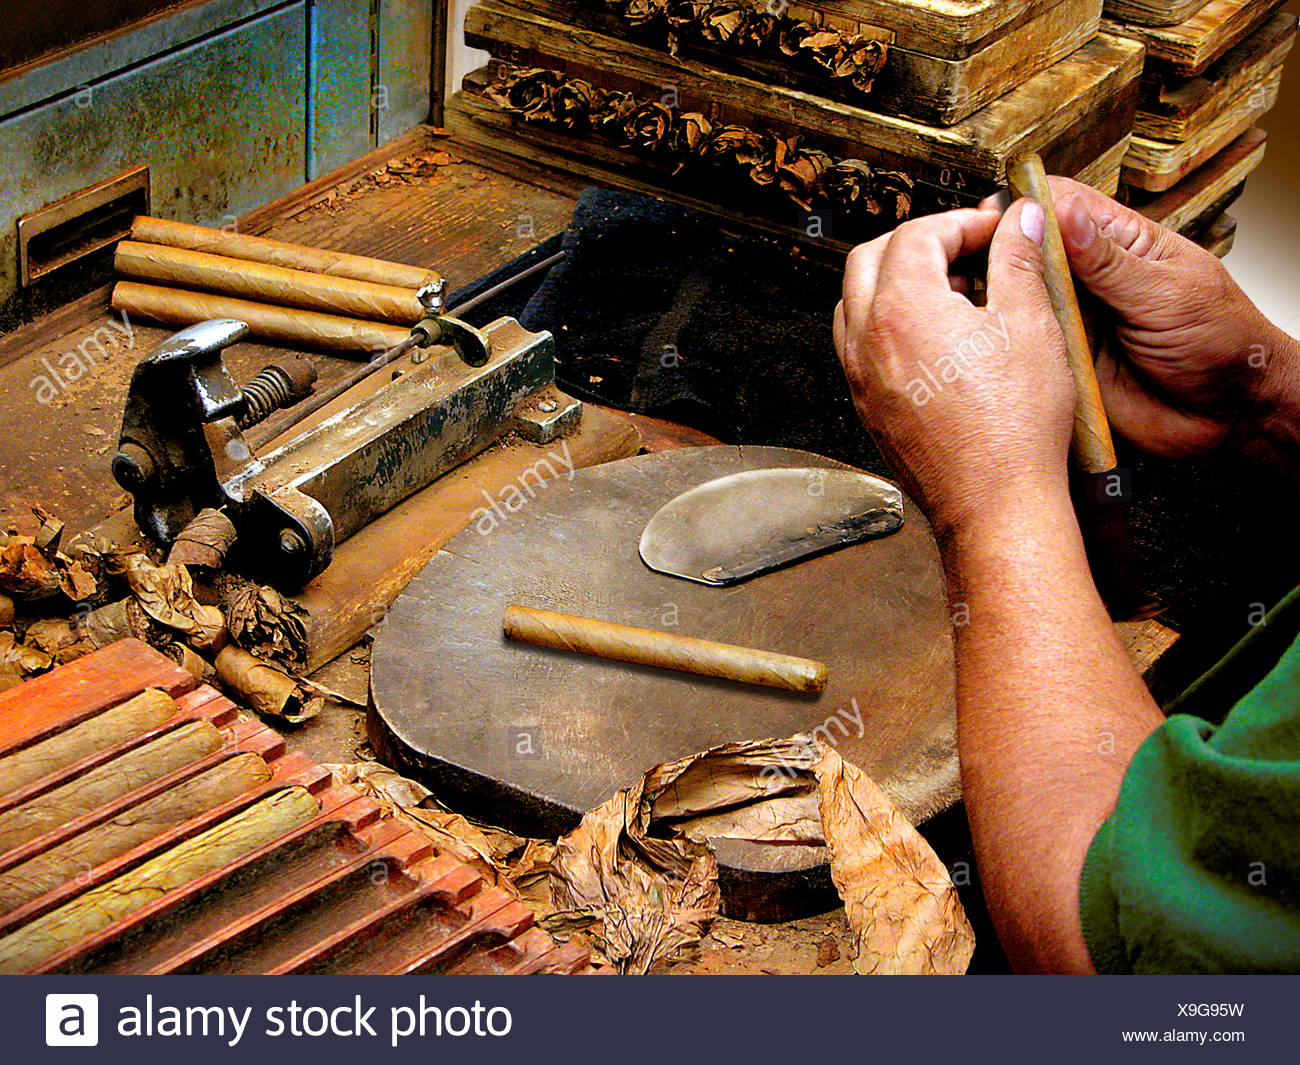 A cigar maker rolling handmade cigars Stock Photo: 281256245